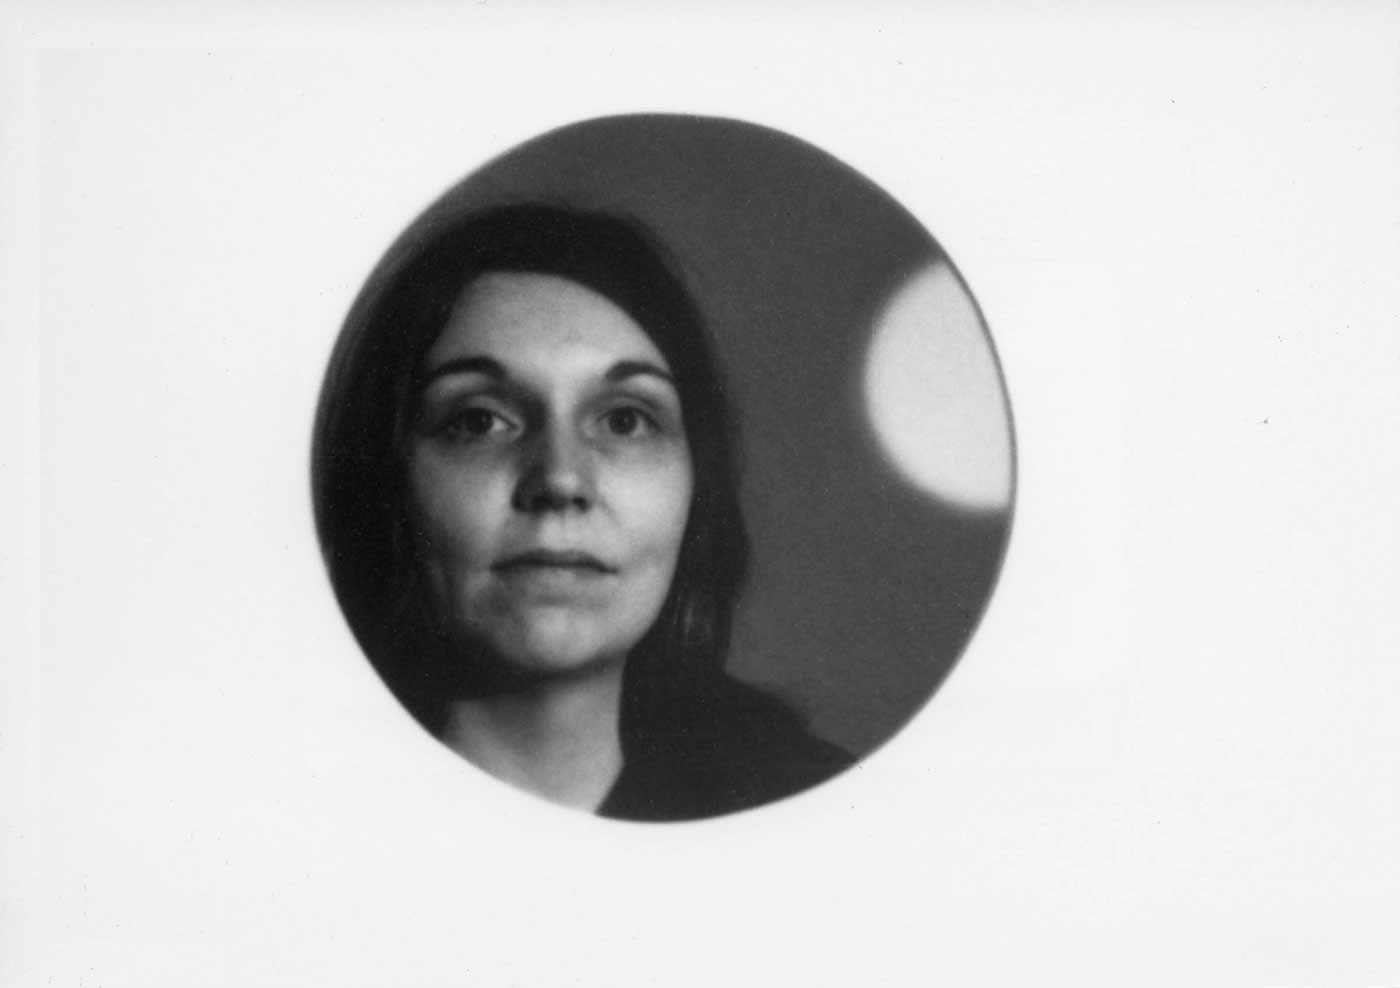 Nancy Holt framed by a circular hole in her installation Holes of Light, January 1973.